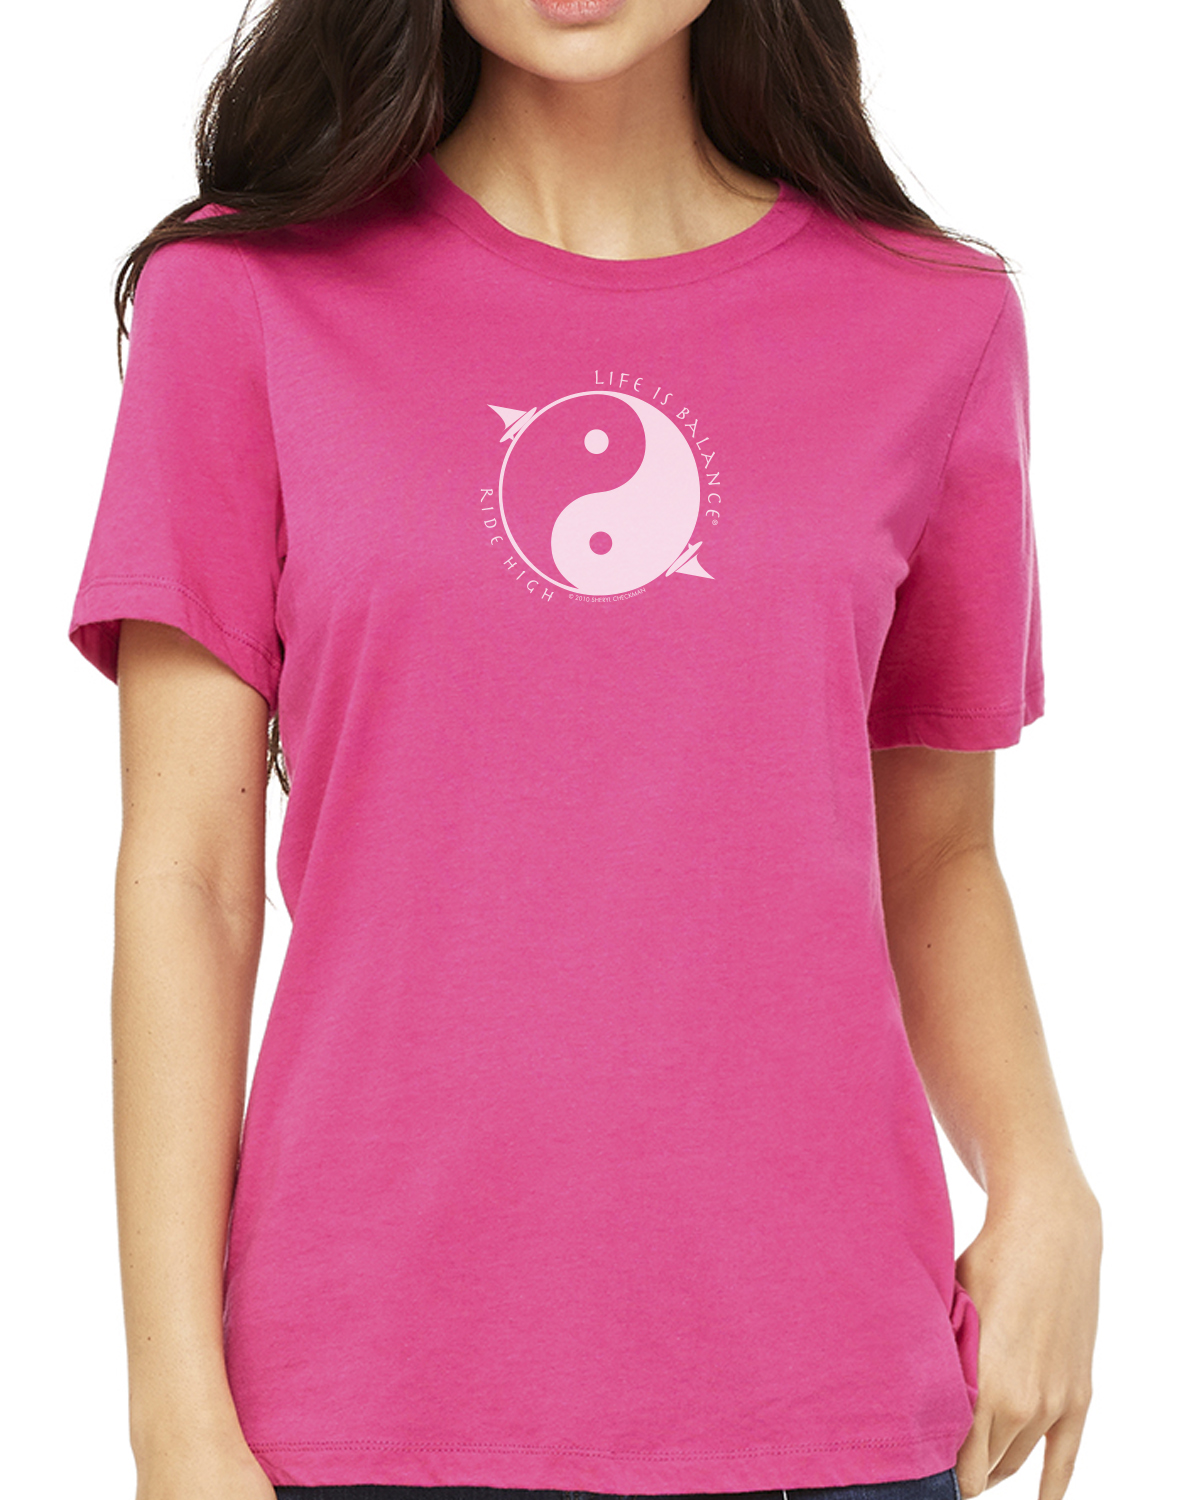 Women's short sleeve windsurfing t-shirt (berry)